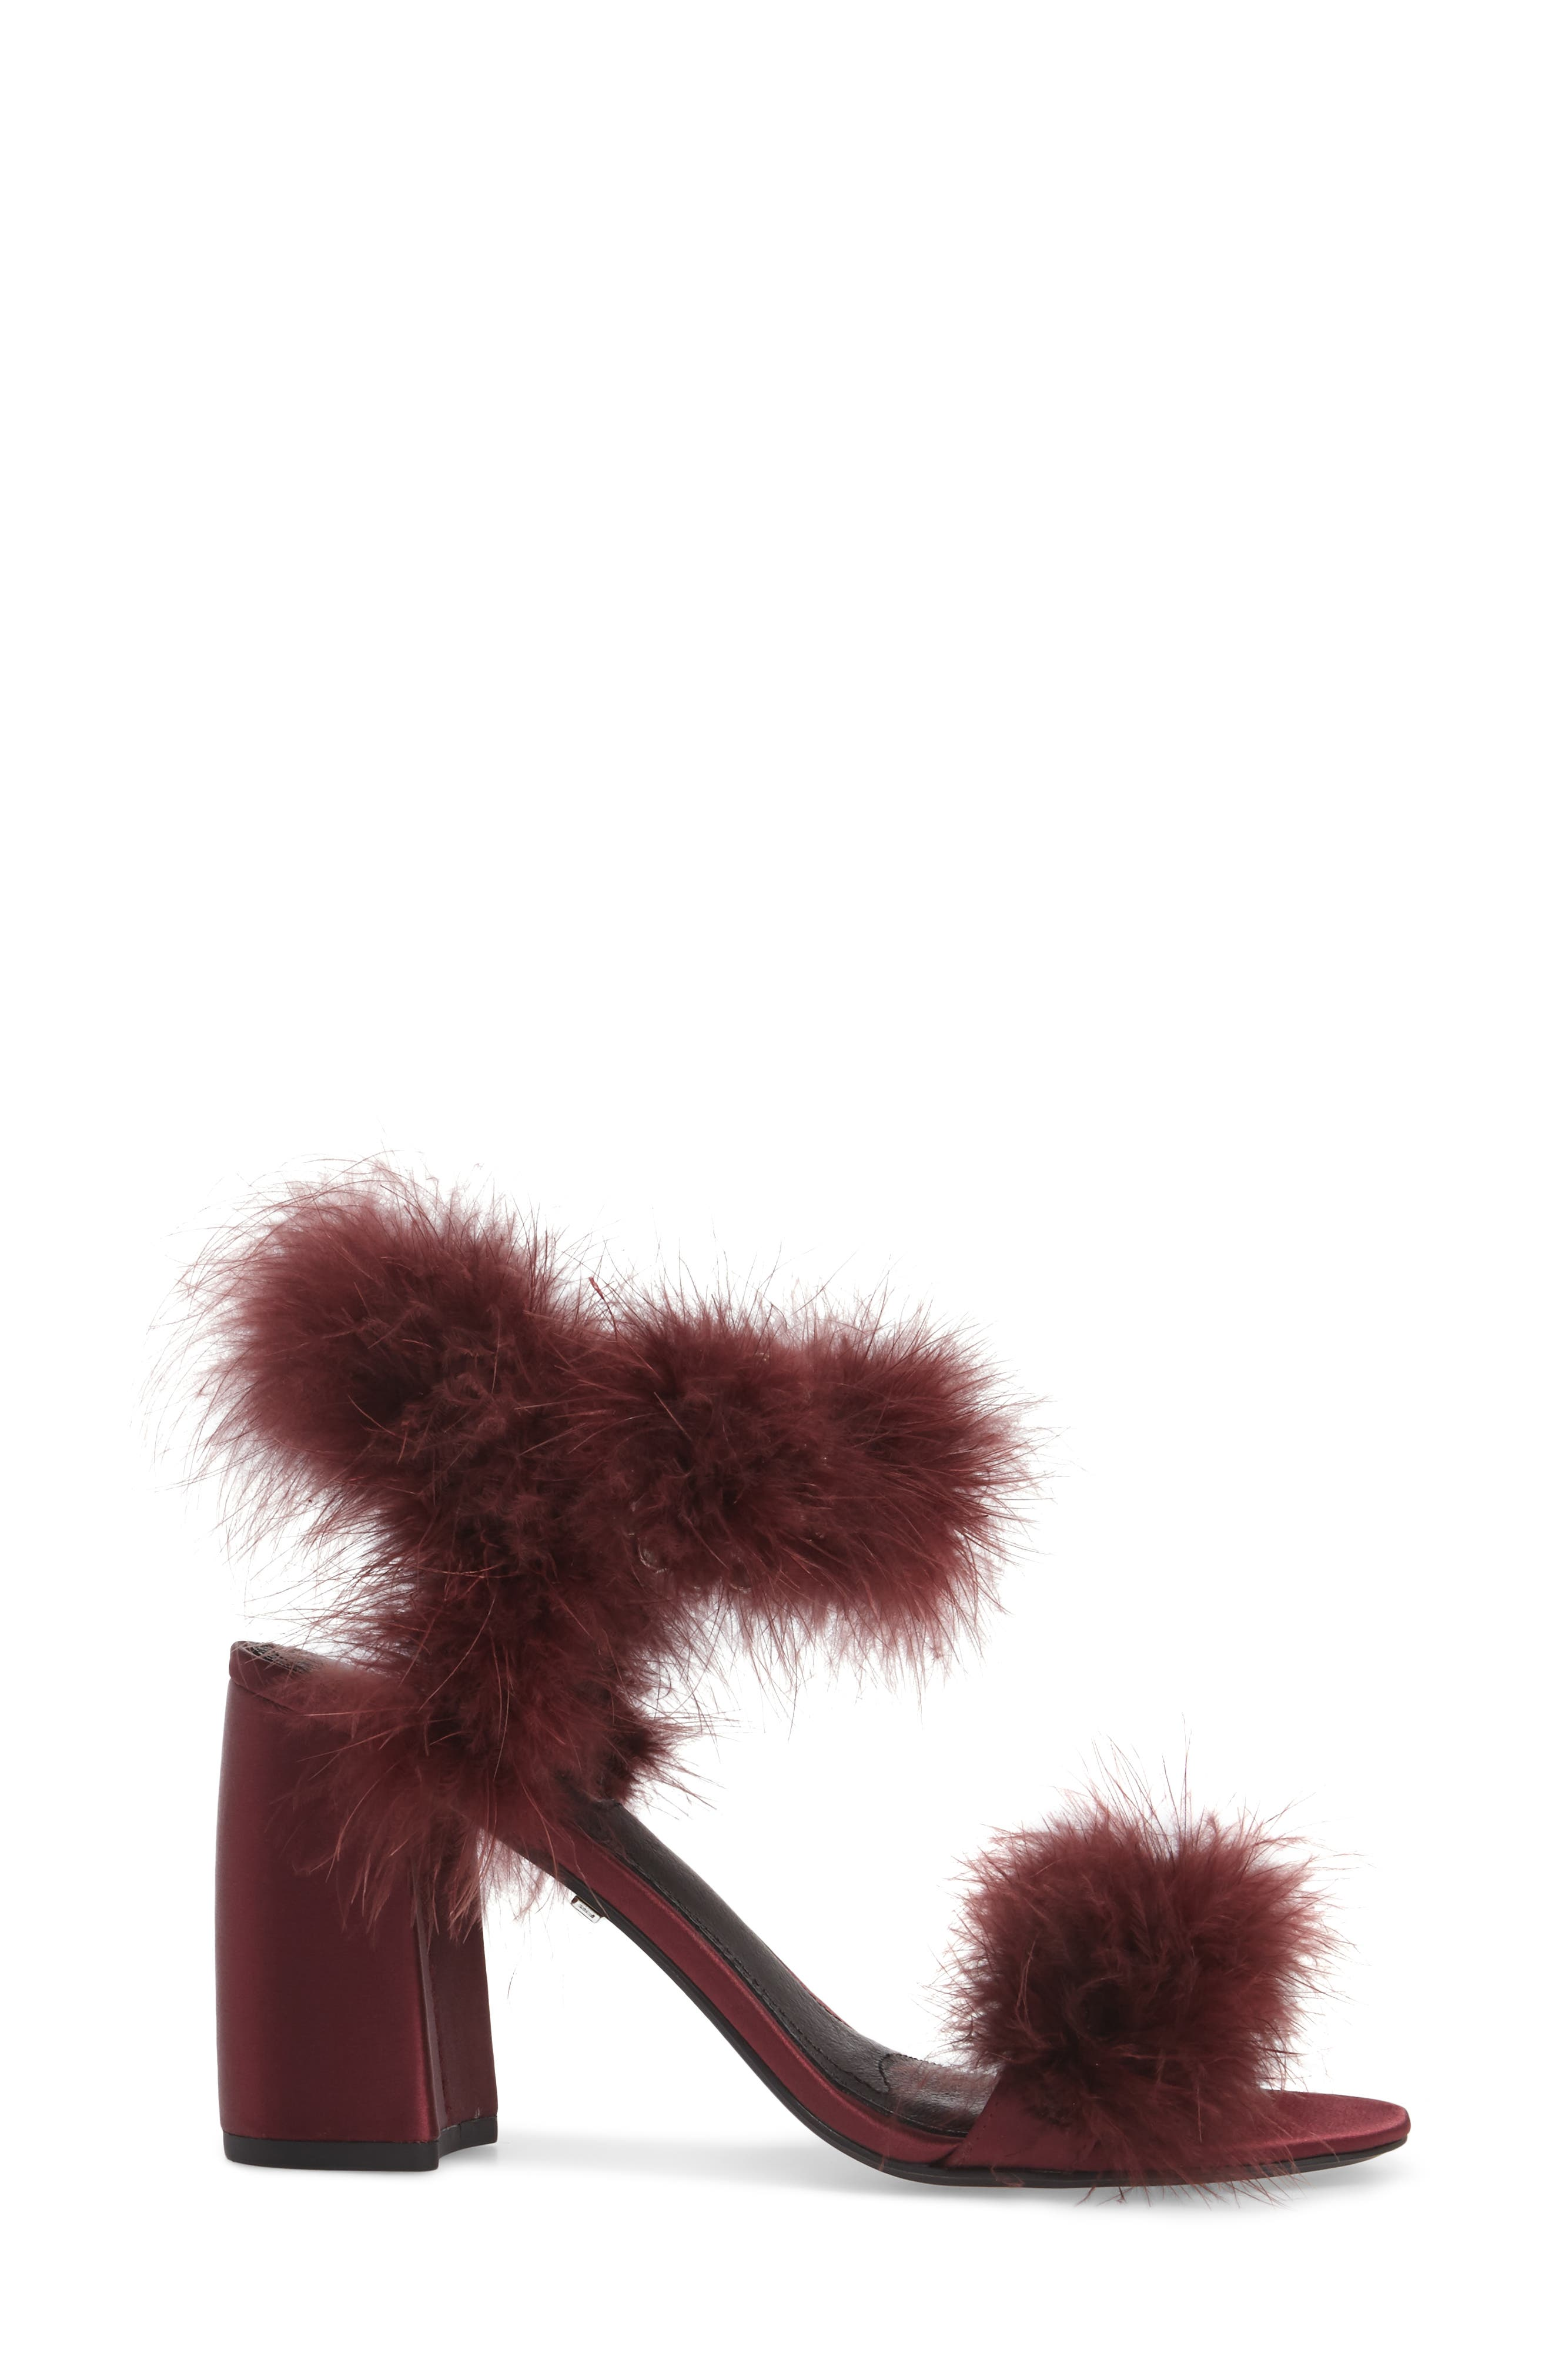 Maribou Feather Sandal,                             Alternate thumbnail 3, color,                             Burgundy